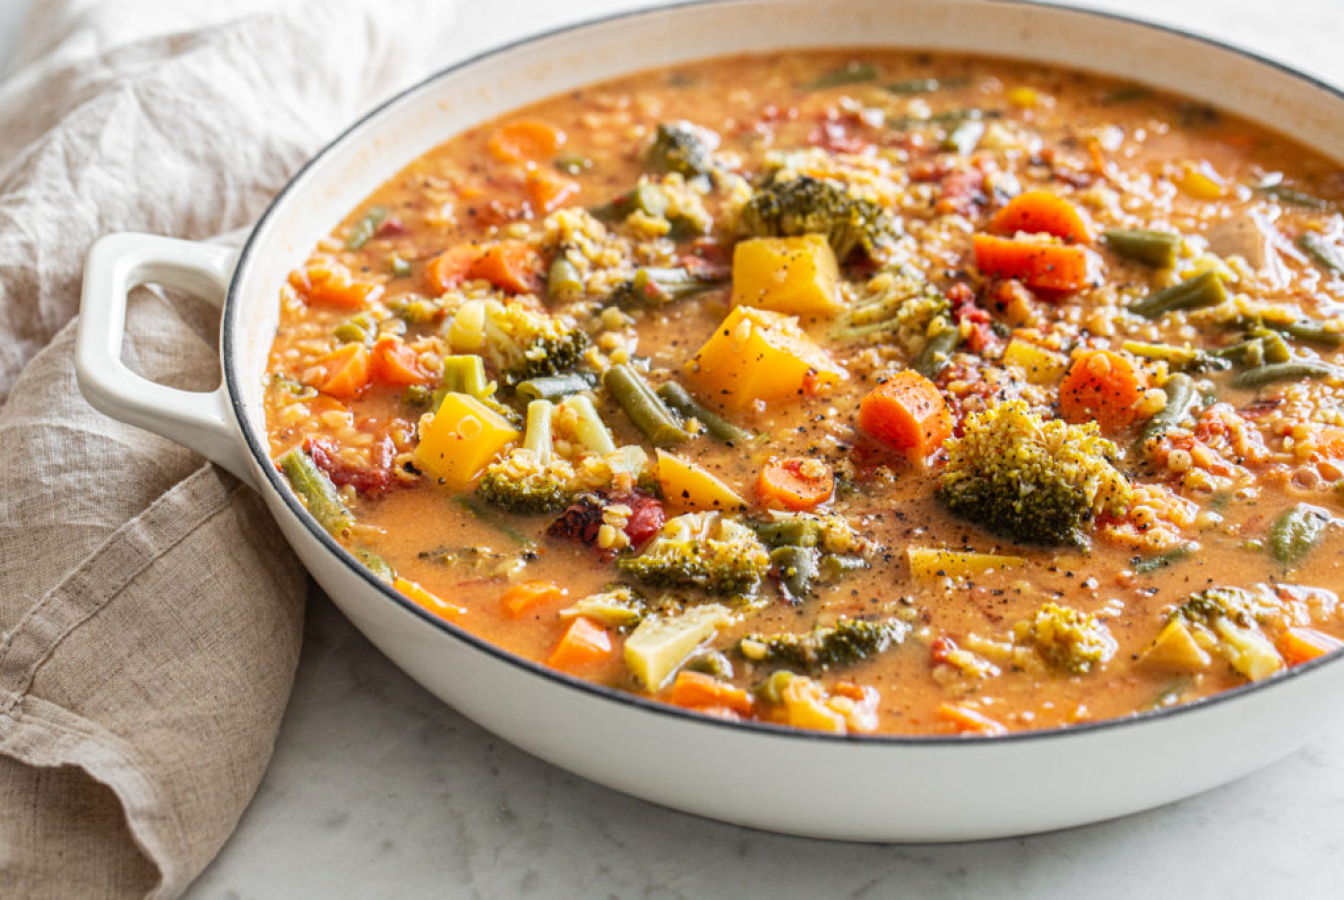 A bowl of vegetable curry